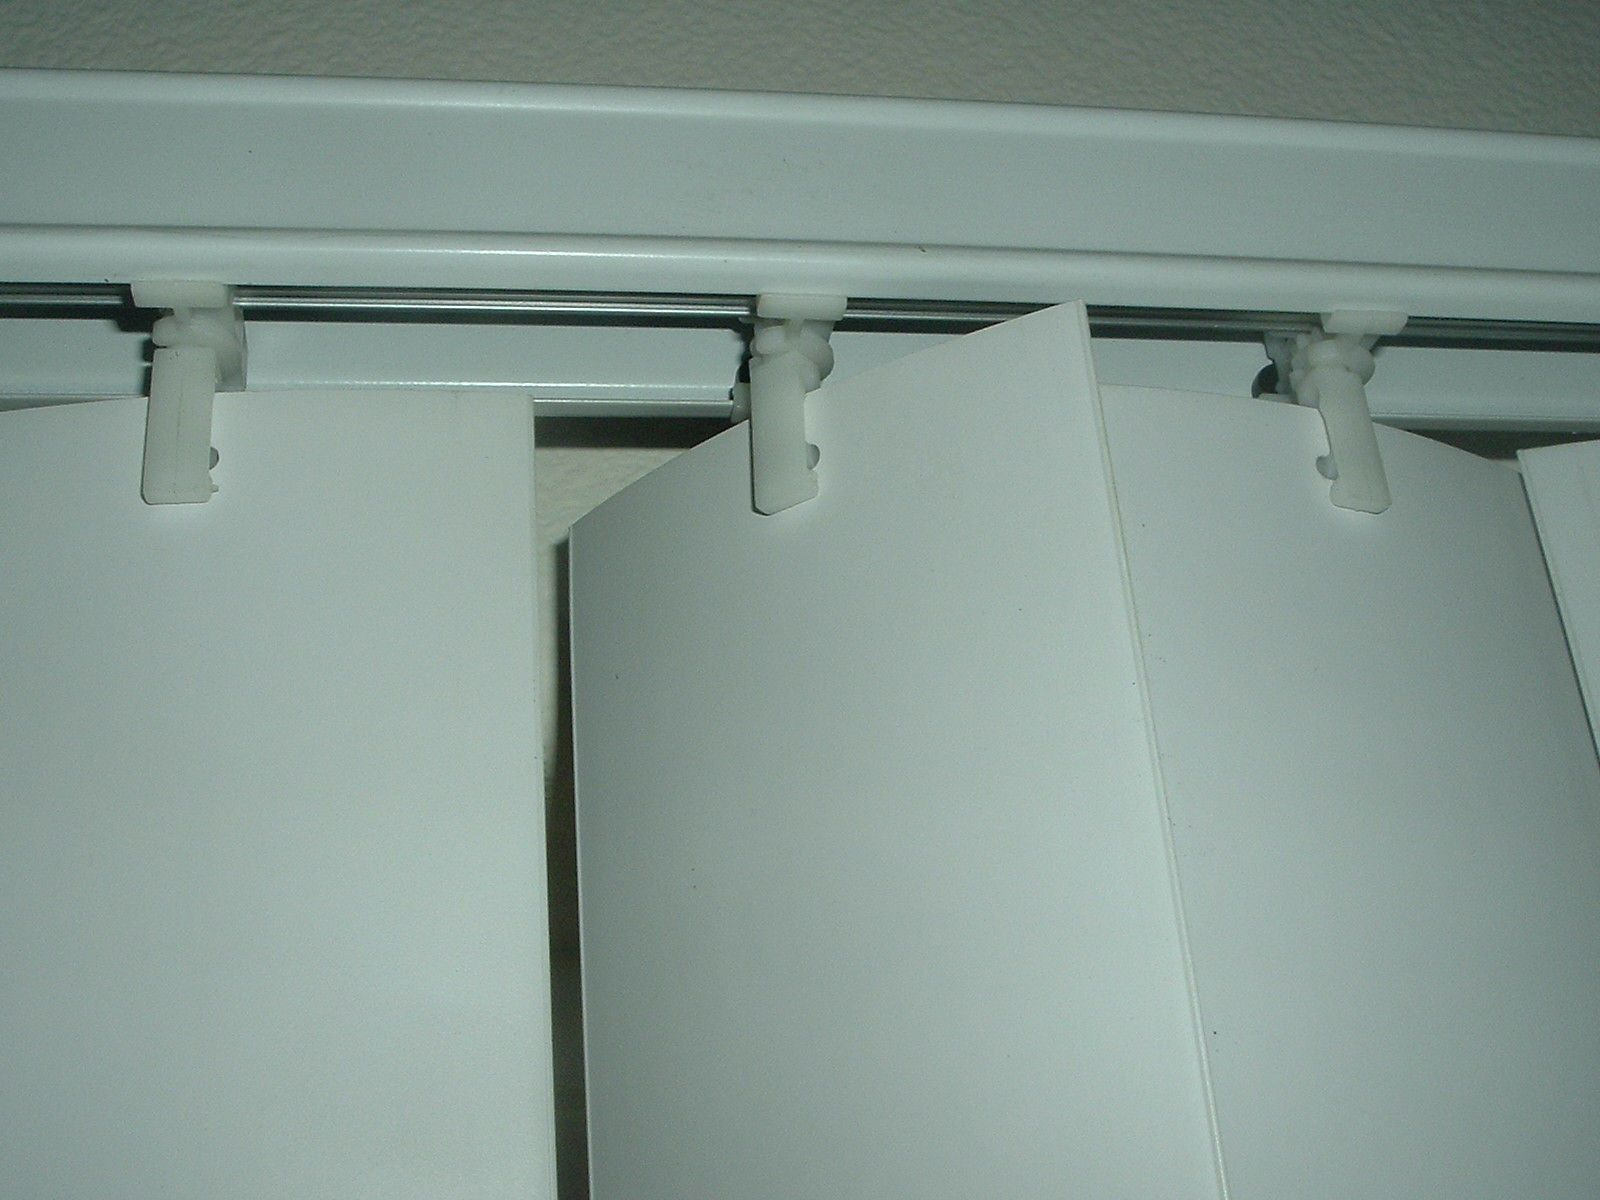 How To Fix Crooked Vertical Blinds Cleaning Blinds Vertical Blinds Curtains With Blinds